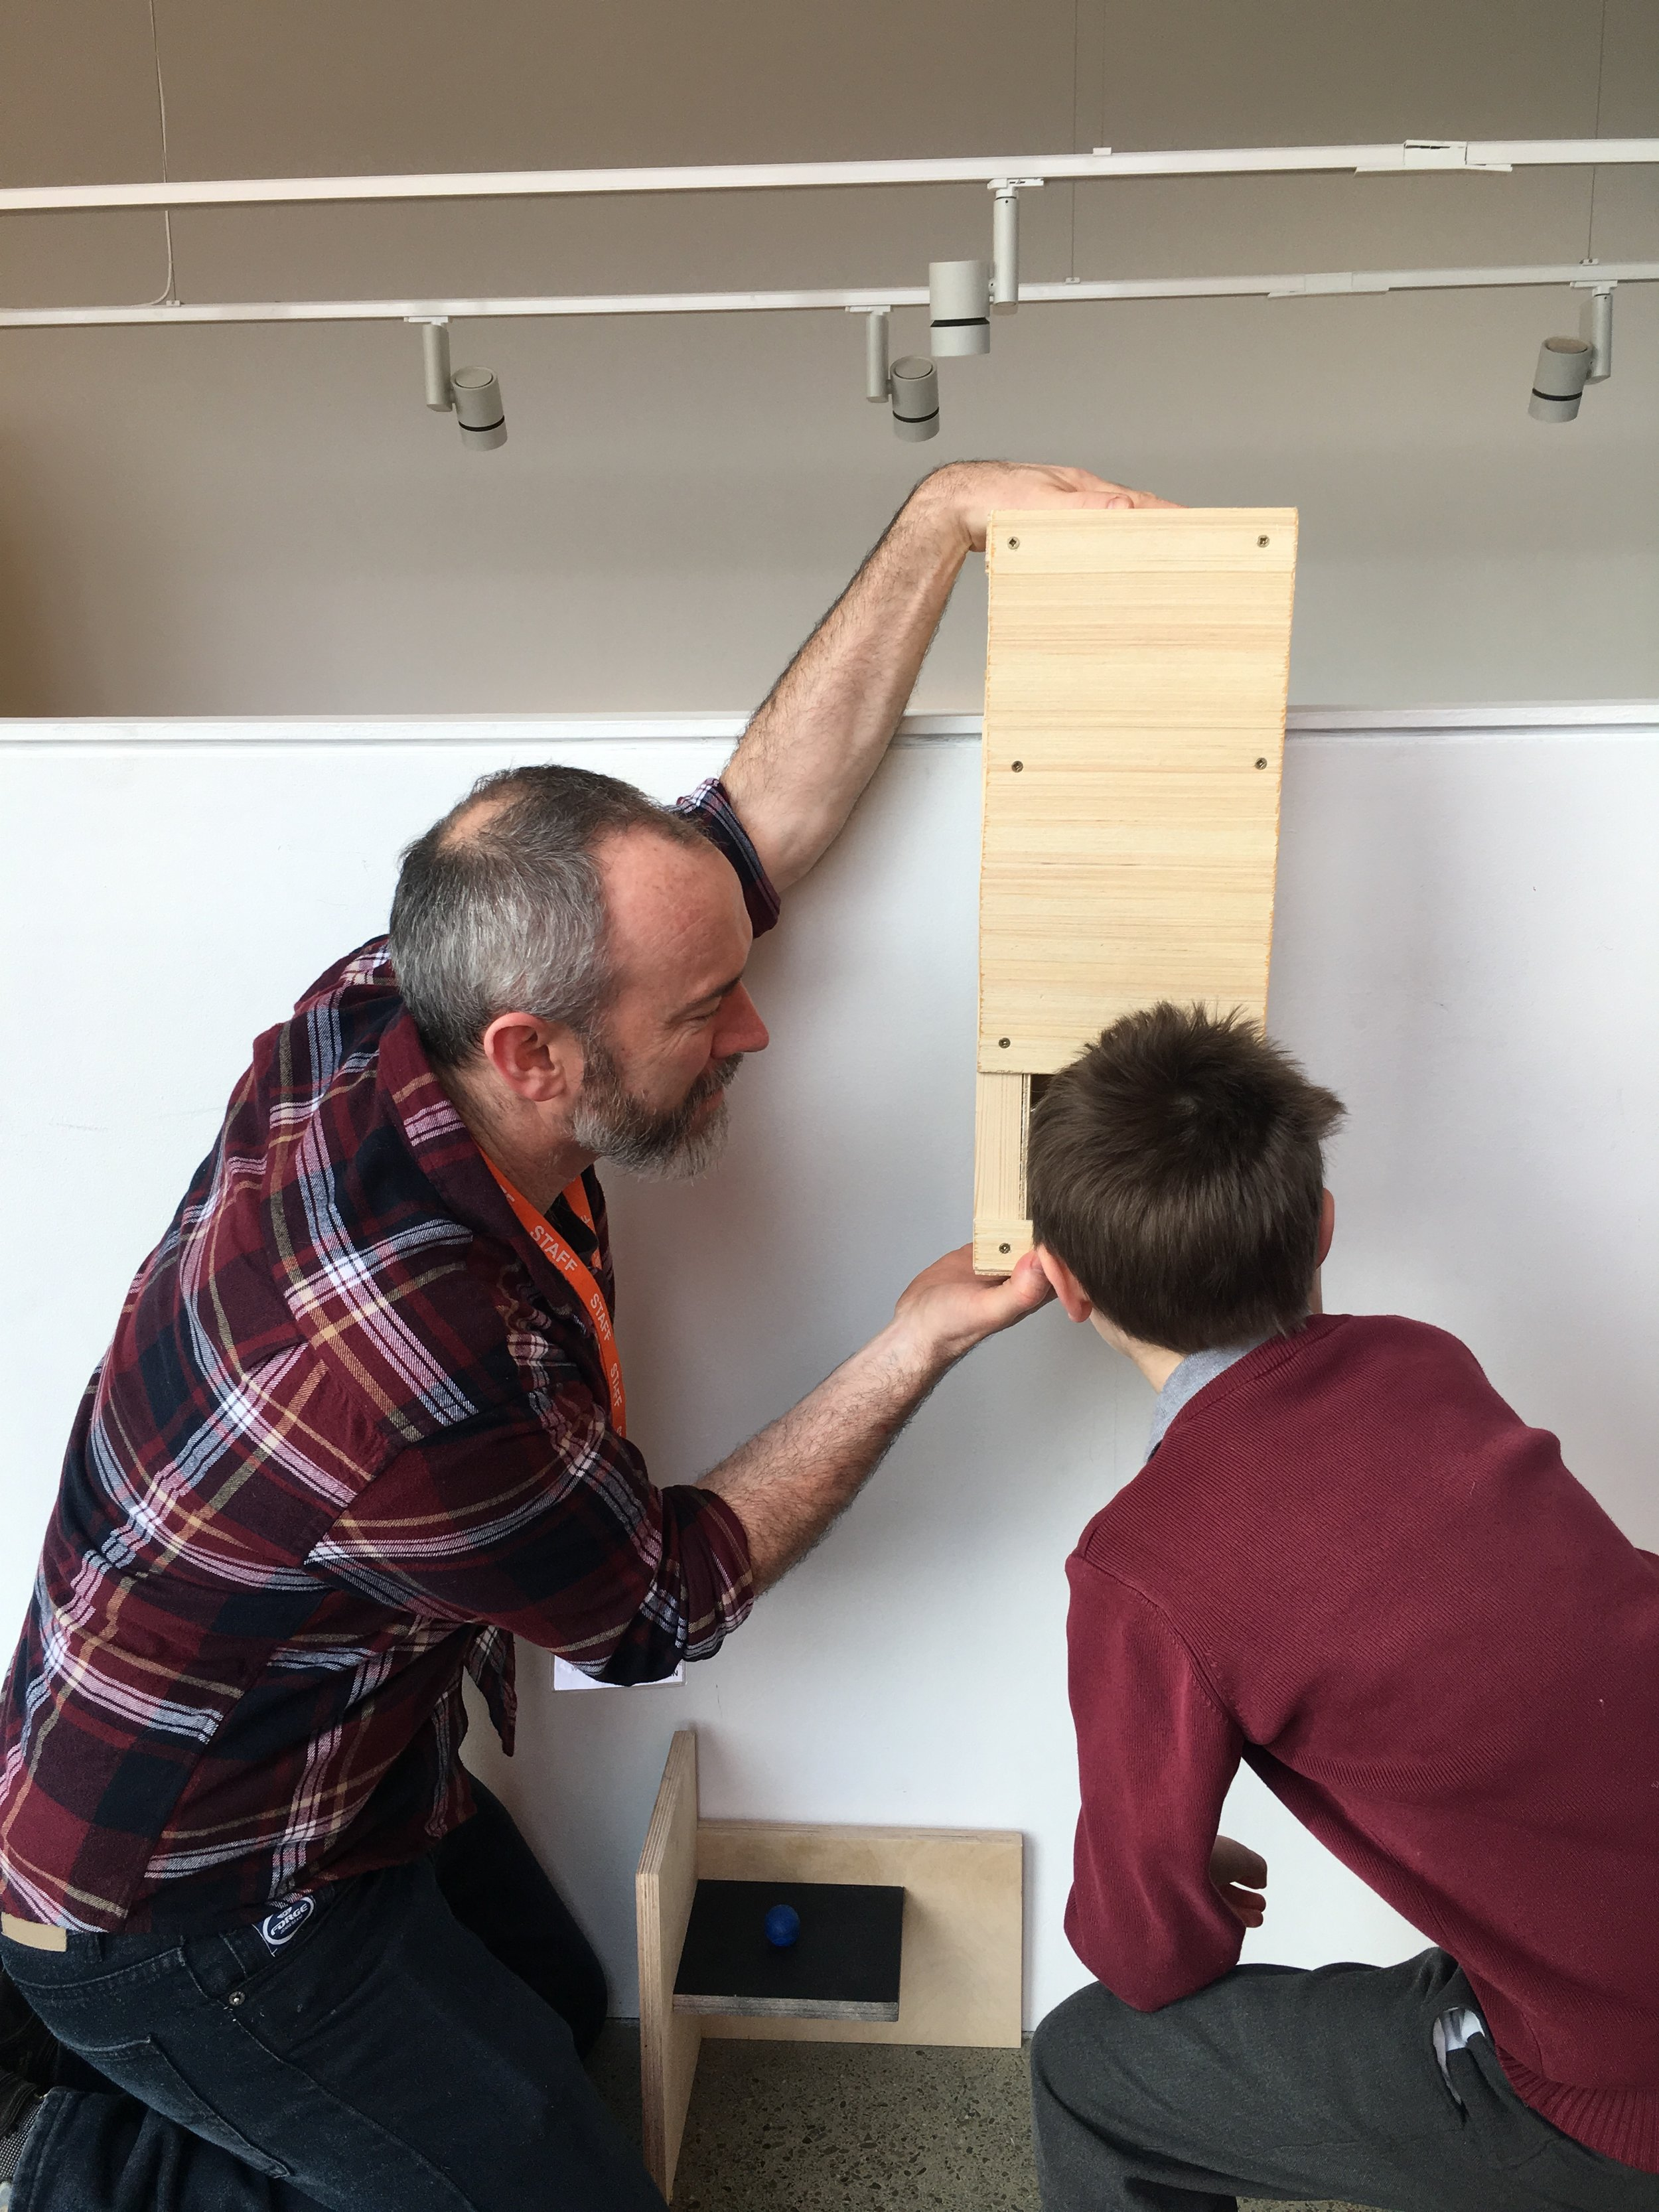 This week they also tested out the periscope. Built by technician Stephen, Siobhan and the students conceived of the periscope as a way for smaller children to see over the balcony.